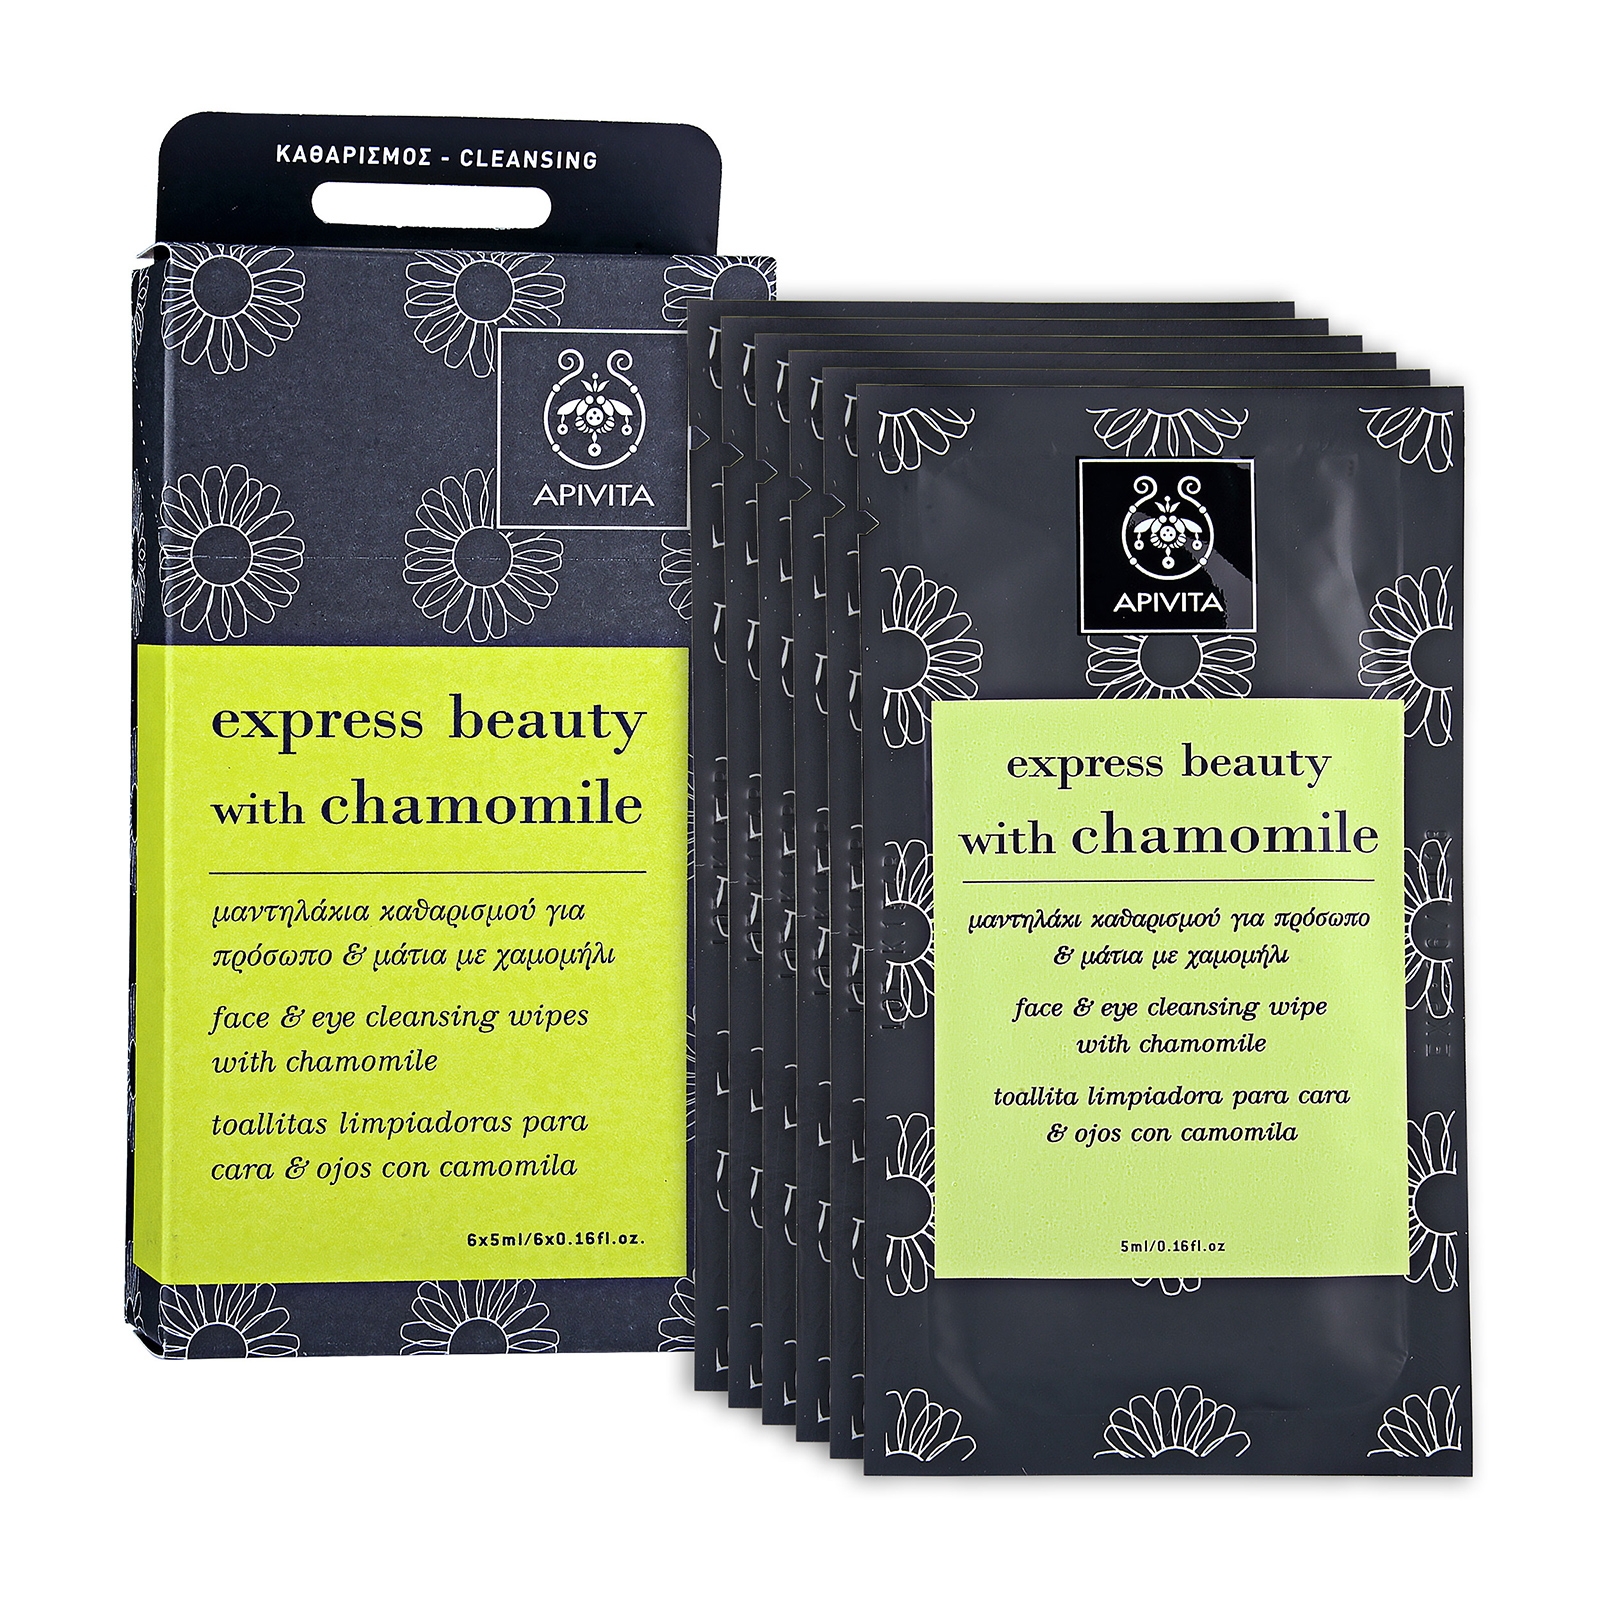 APIVITA Express Beauty  Face & Eye Cleansing Wipe with Chamomile 6 x 2 x 0.16 oz, 6 x 2 x 5 ml